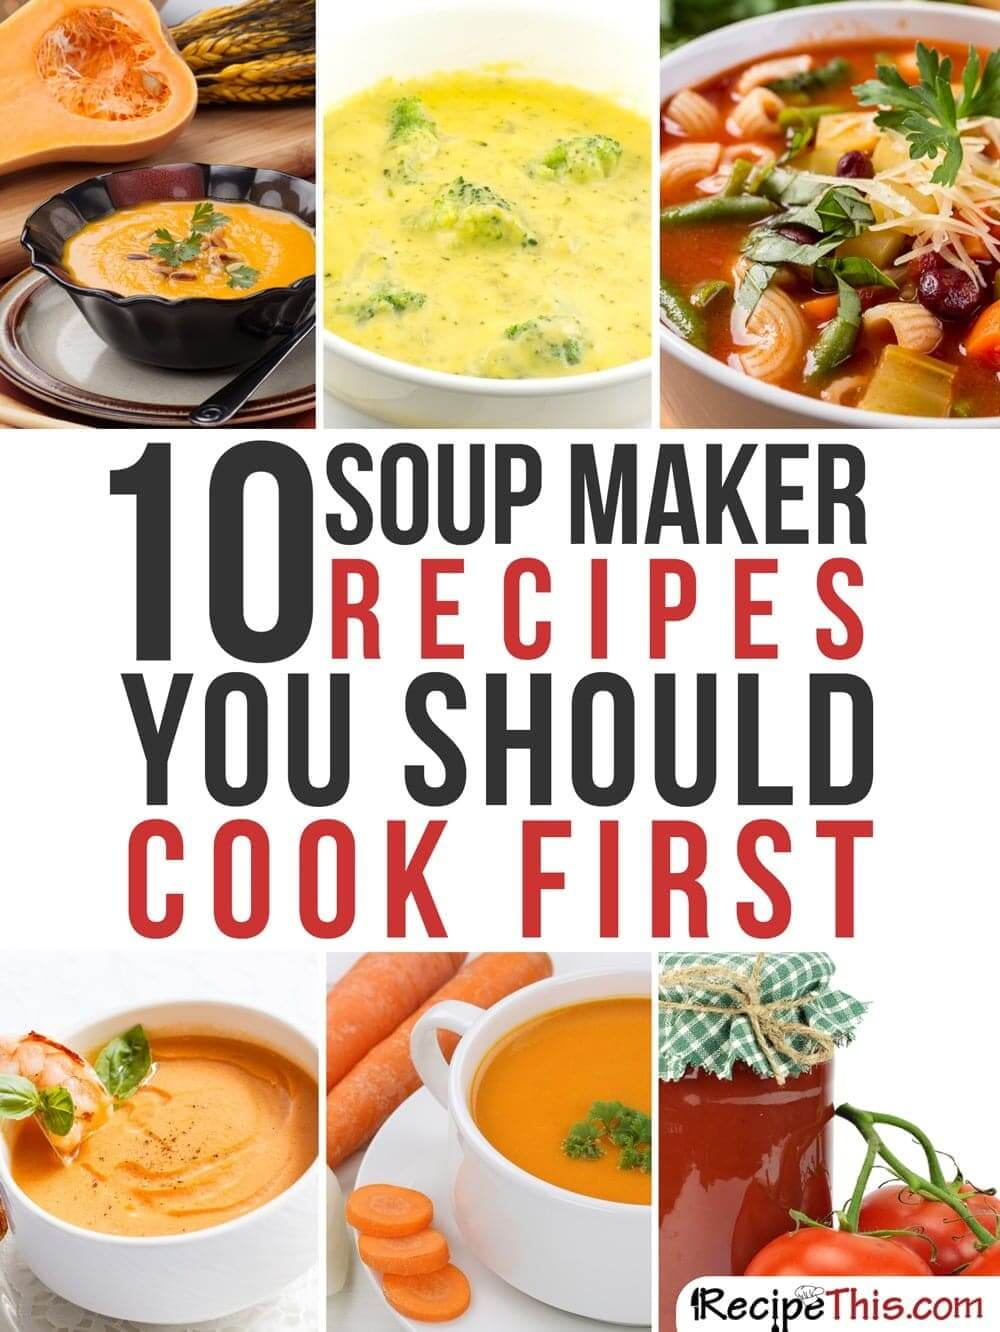 Soup Maker Recipes | Top 10 Soup Maker Recipes You Should Cook First from RecipeThis.com